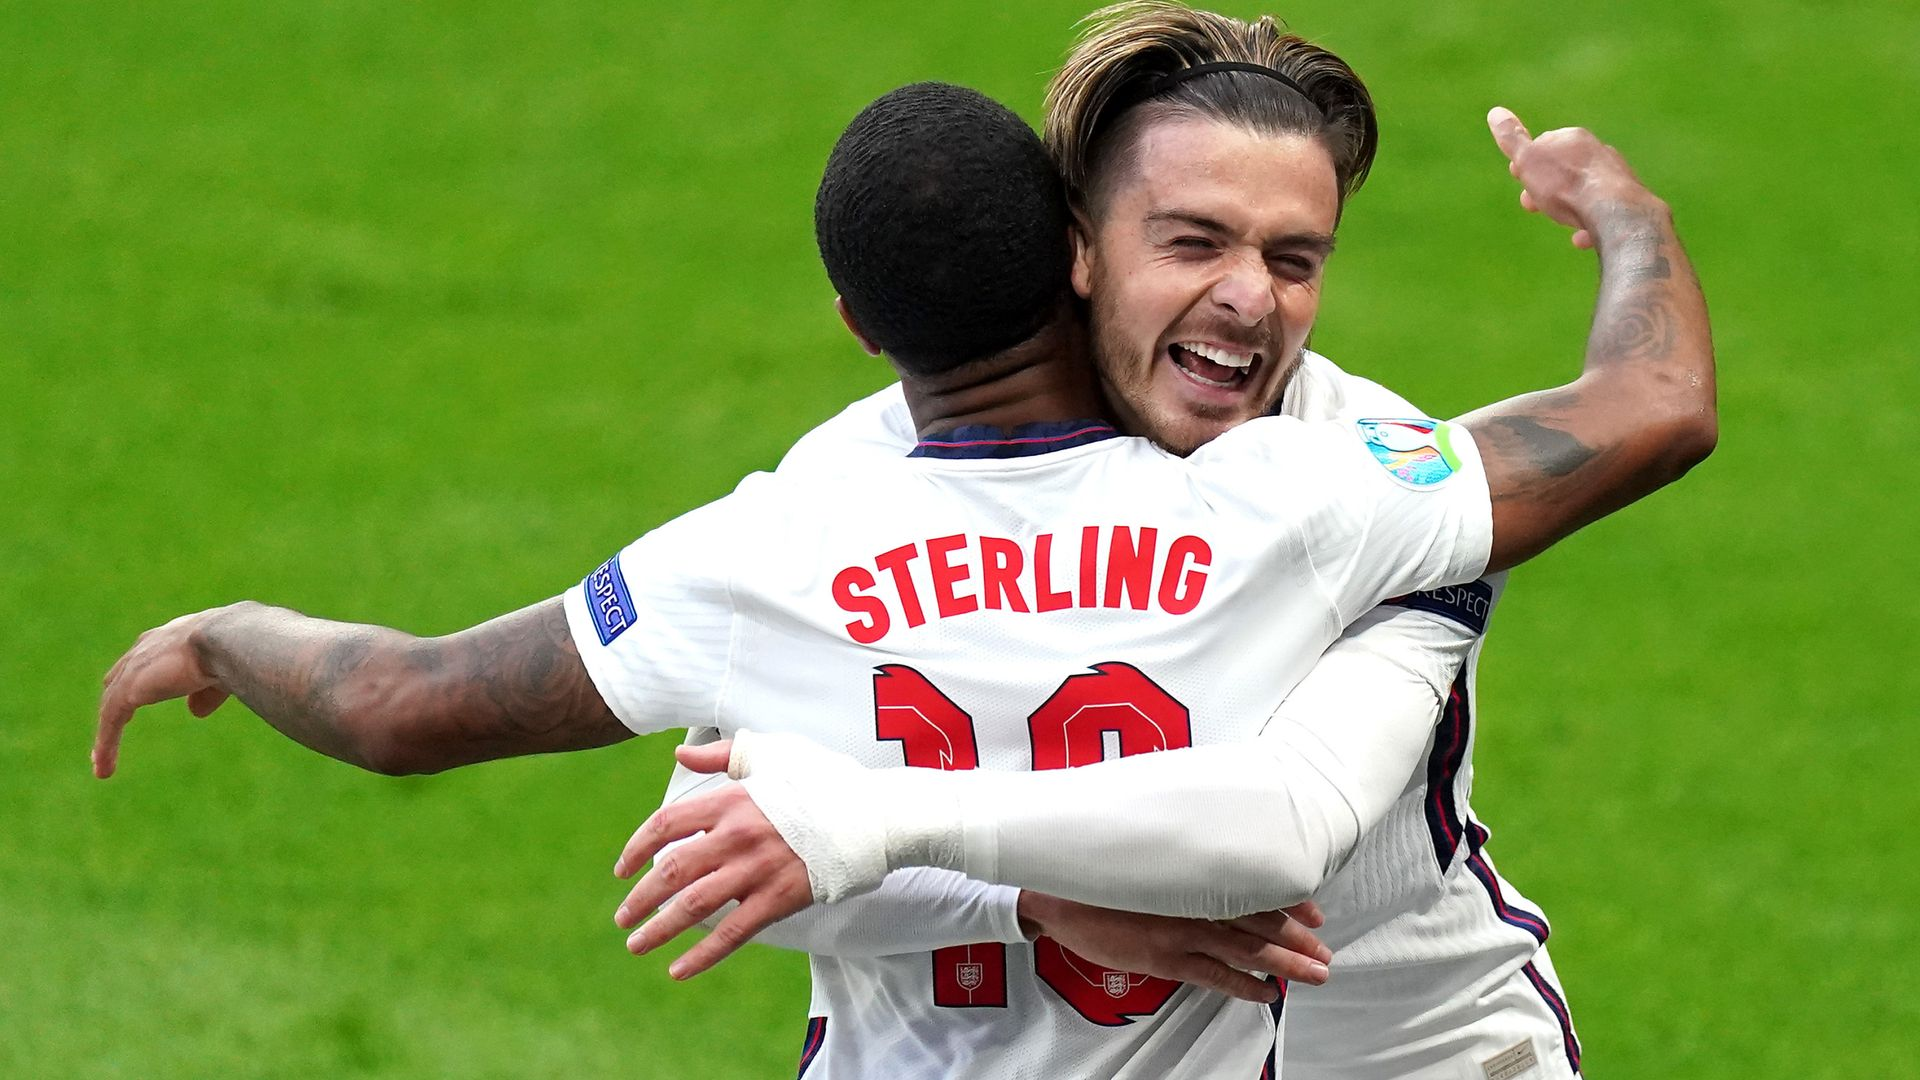 Sterling: Grealish can help me score more goals